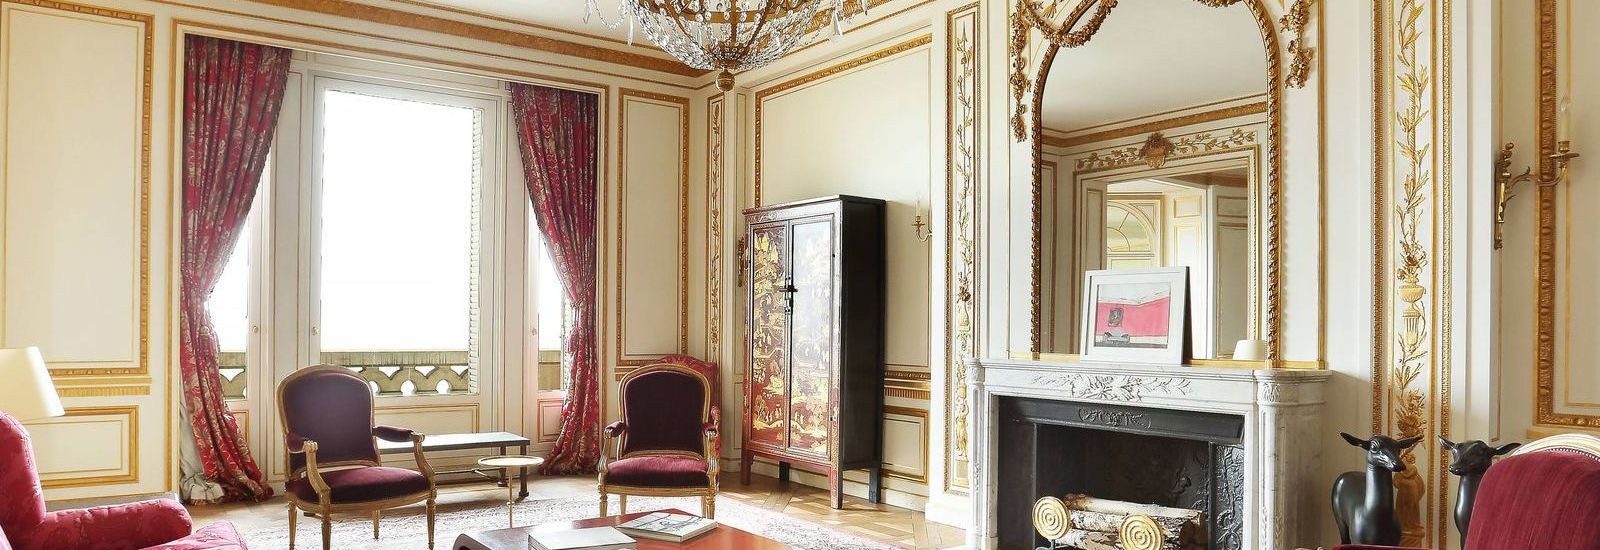 How To Decorate Your Home With French Art And Furniture